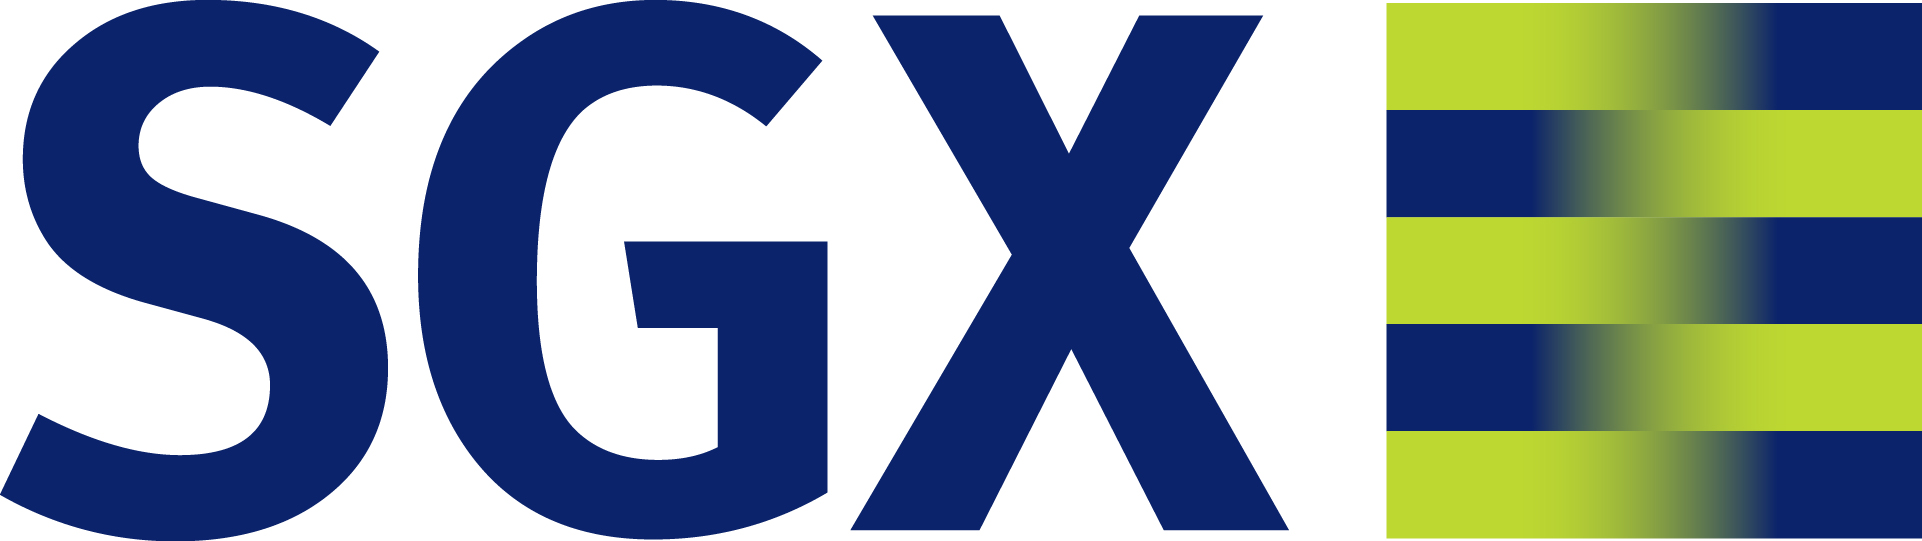 Xignite Data-sources: Singapore Exchange (SGX)